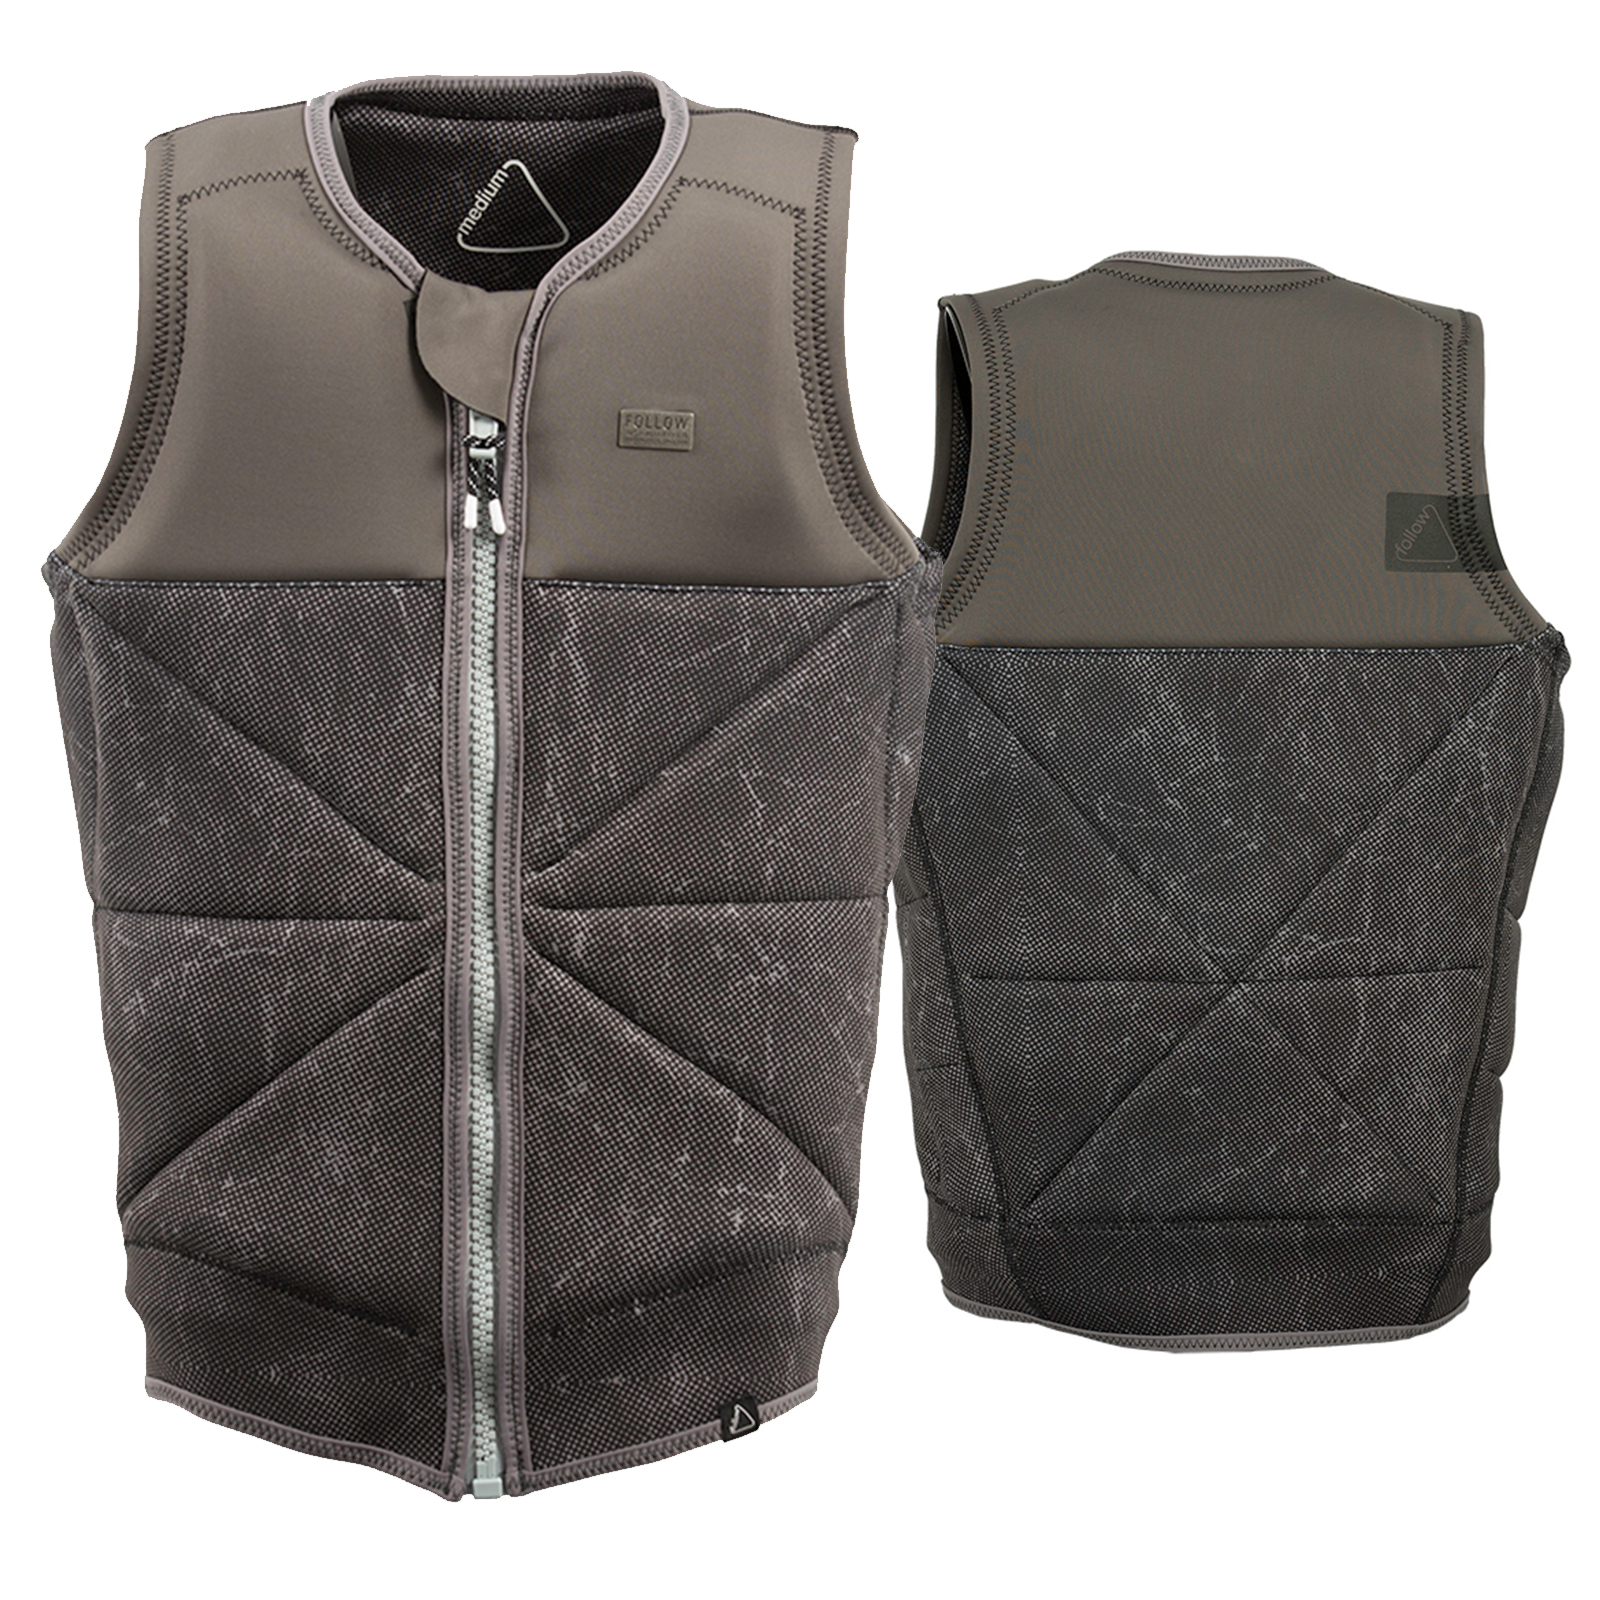 BEACON CODY IMPACT VEST BLACK FOLLOW 2018